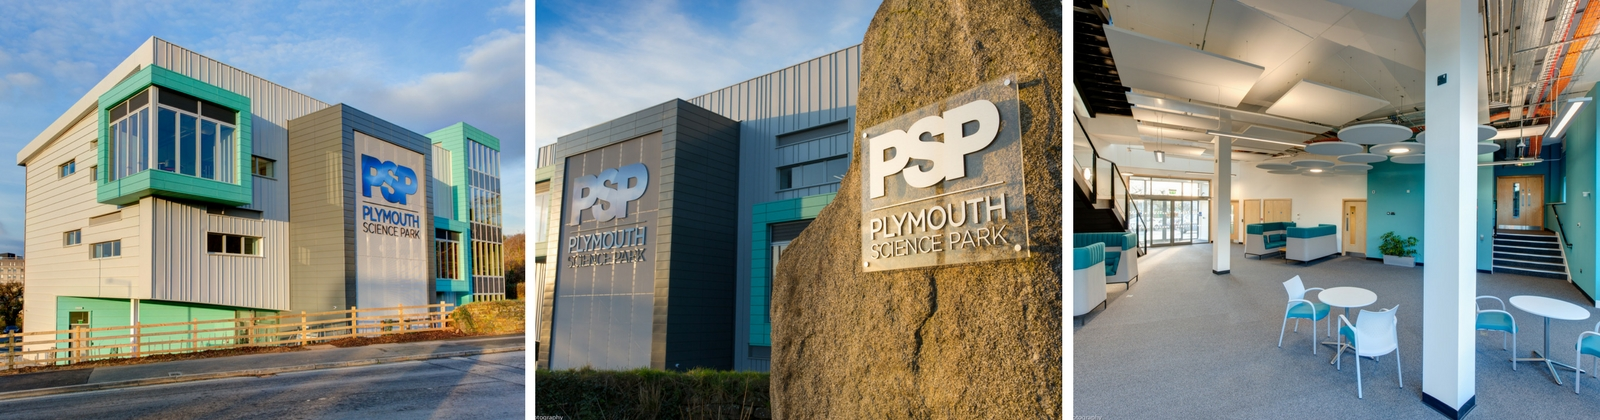 One Research Way, Plymouth Science Park | Michelmores Property Awards